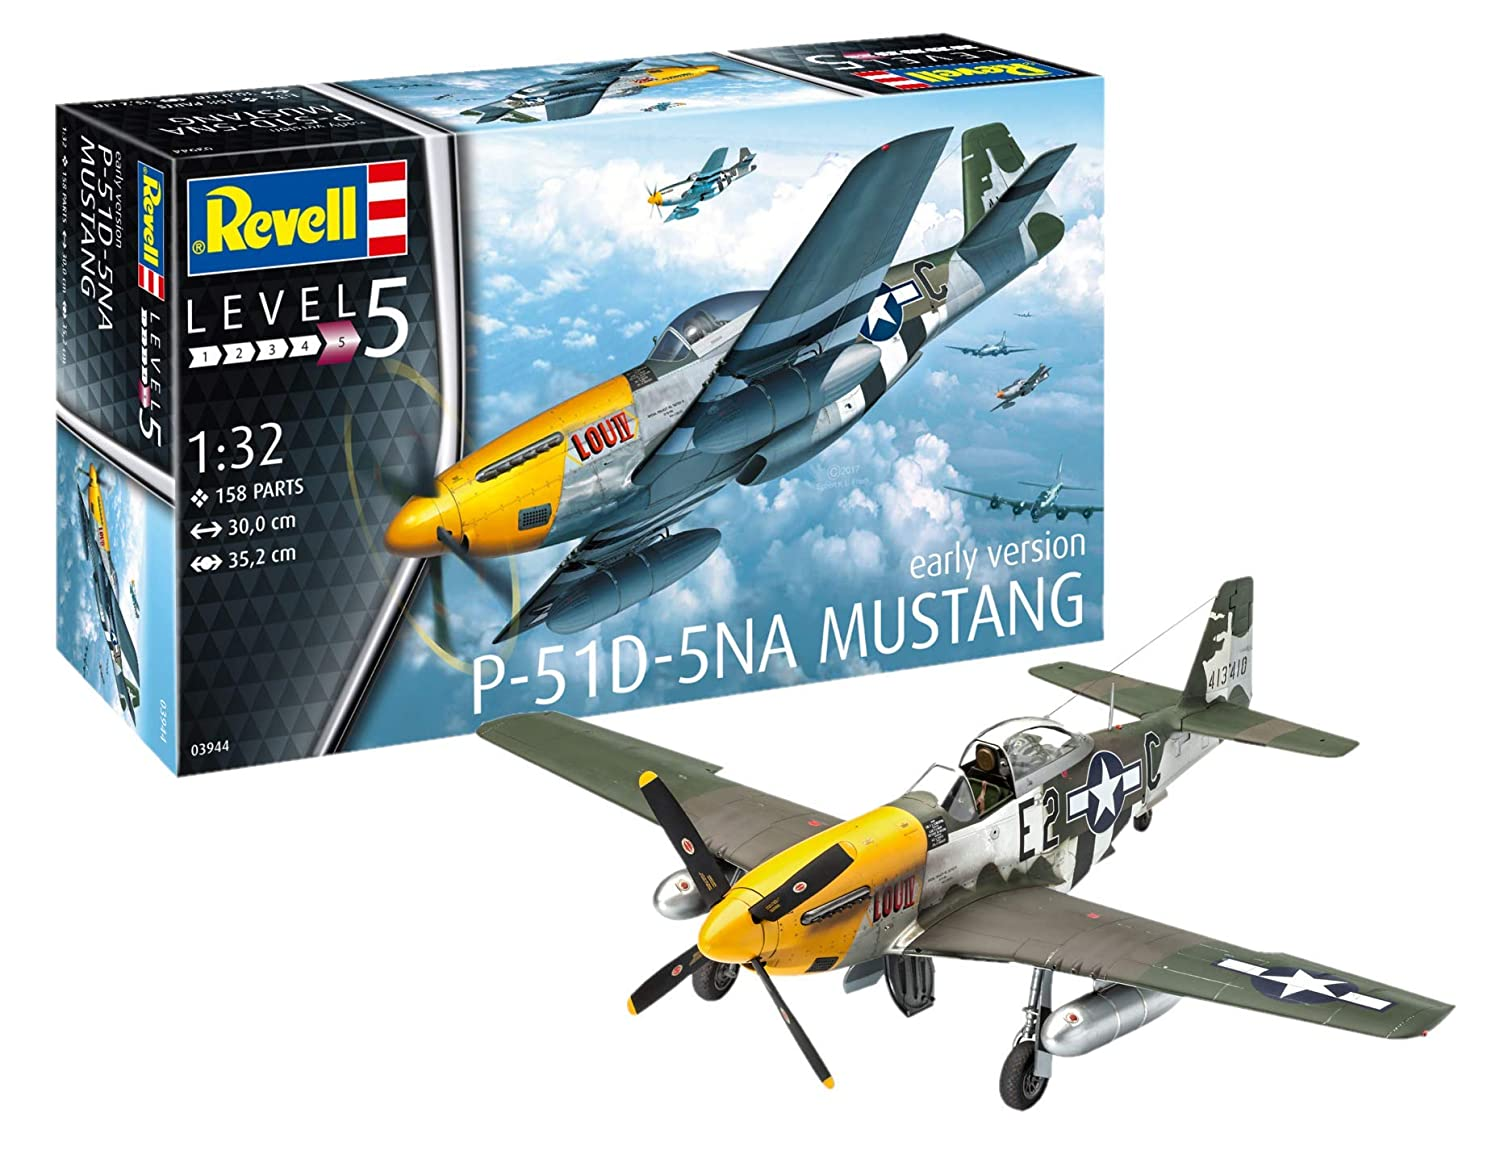 revell 1 32  : Revell 03944 - P-51D Mustang 1:32 Scale: Toys & Games